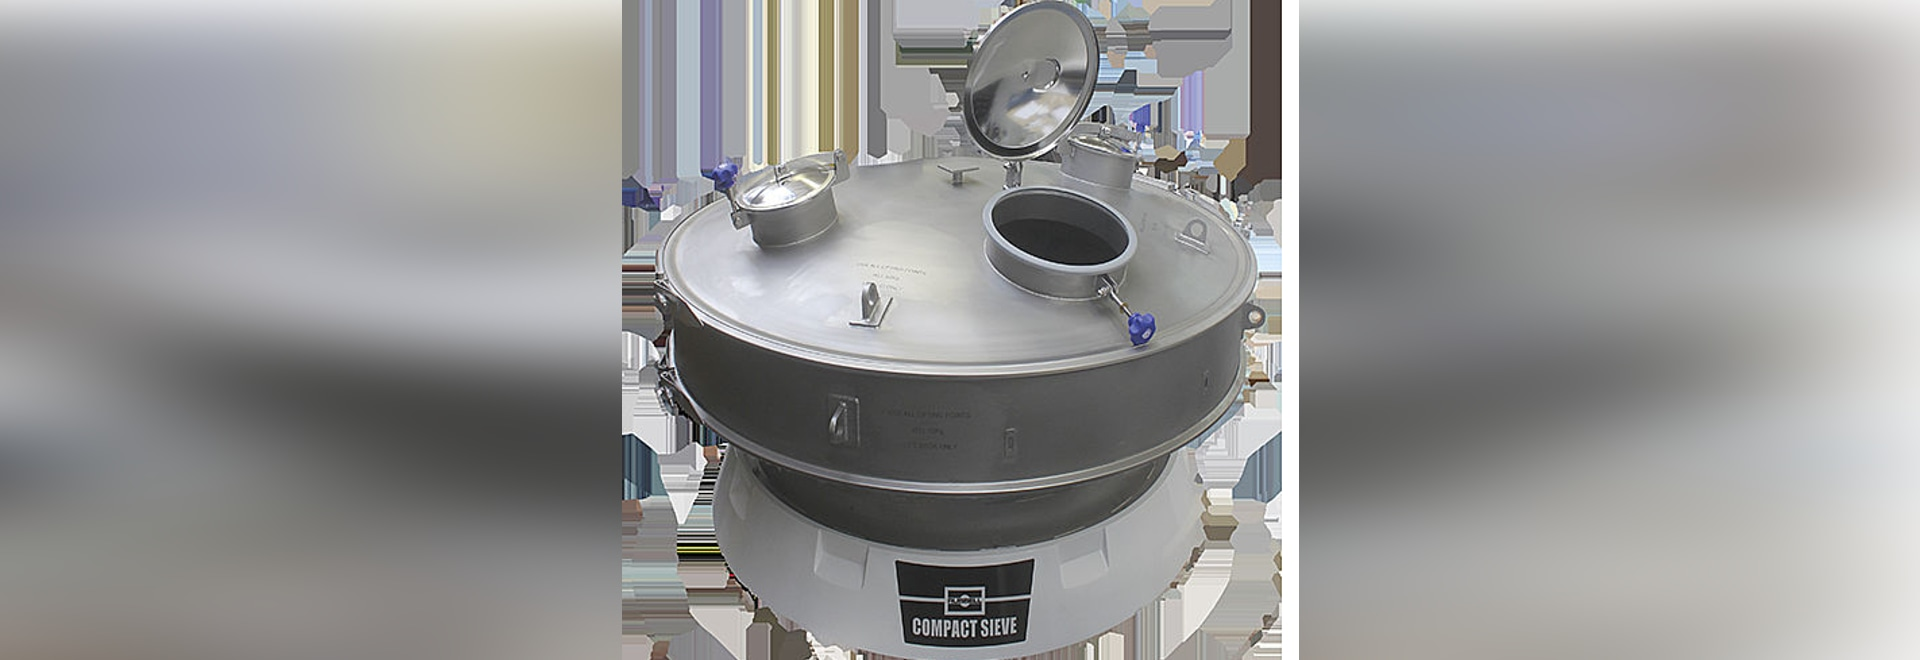 Traditional Rotary Sieves Replaced with Vibratory Screener